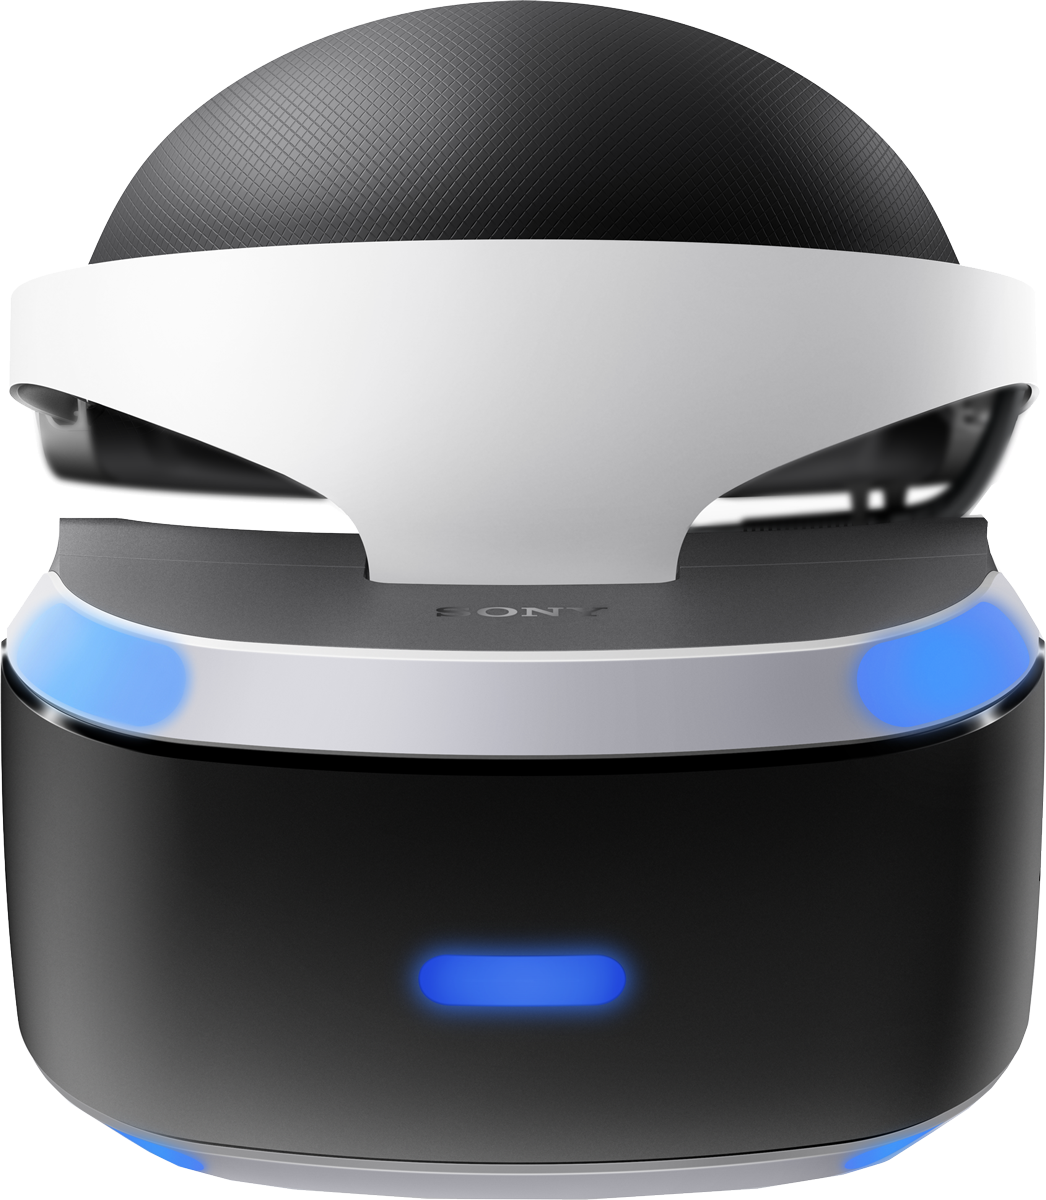 sony playstation vr g nstig kaufen ps4 vr brille media. Black Bedroom Furniture Sets. Home Design Ideas